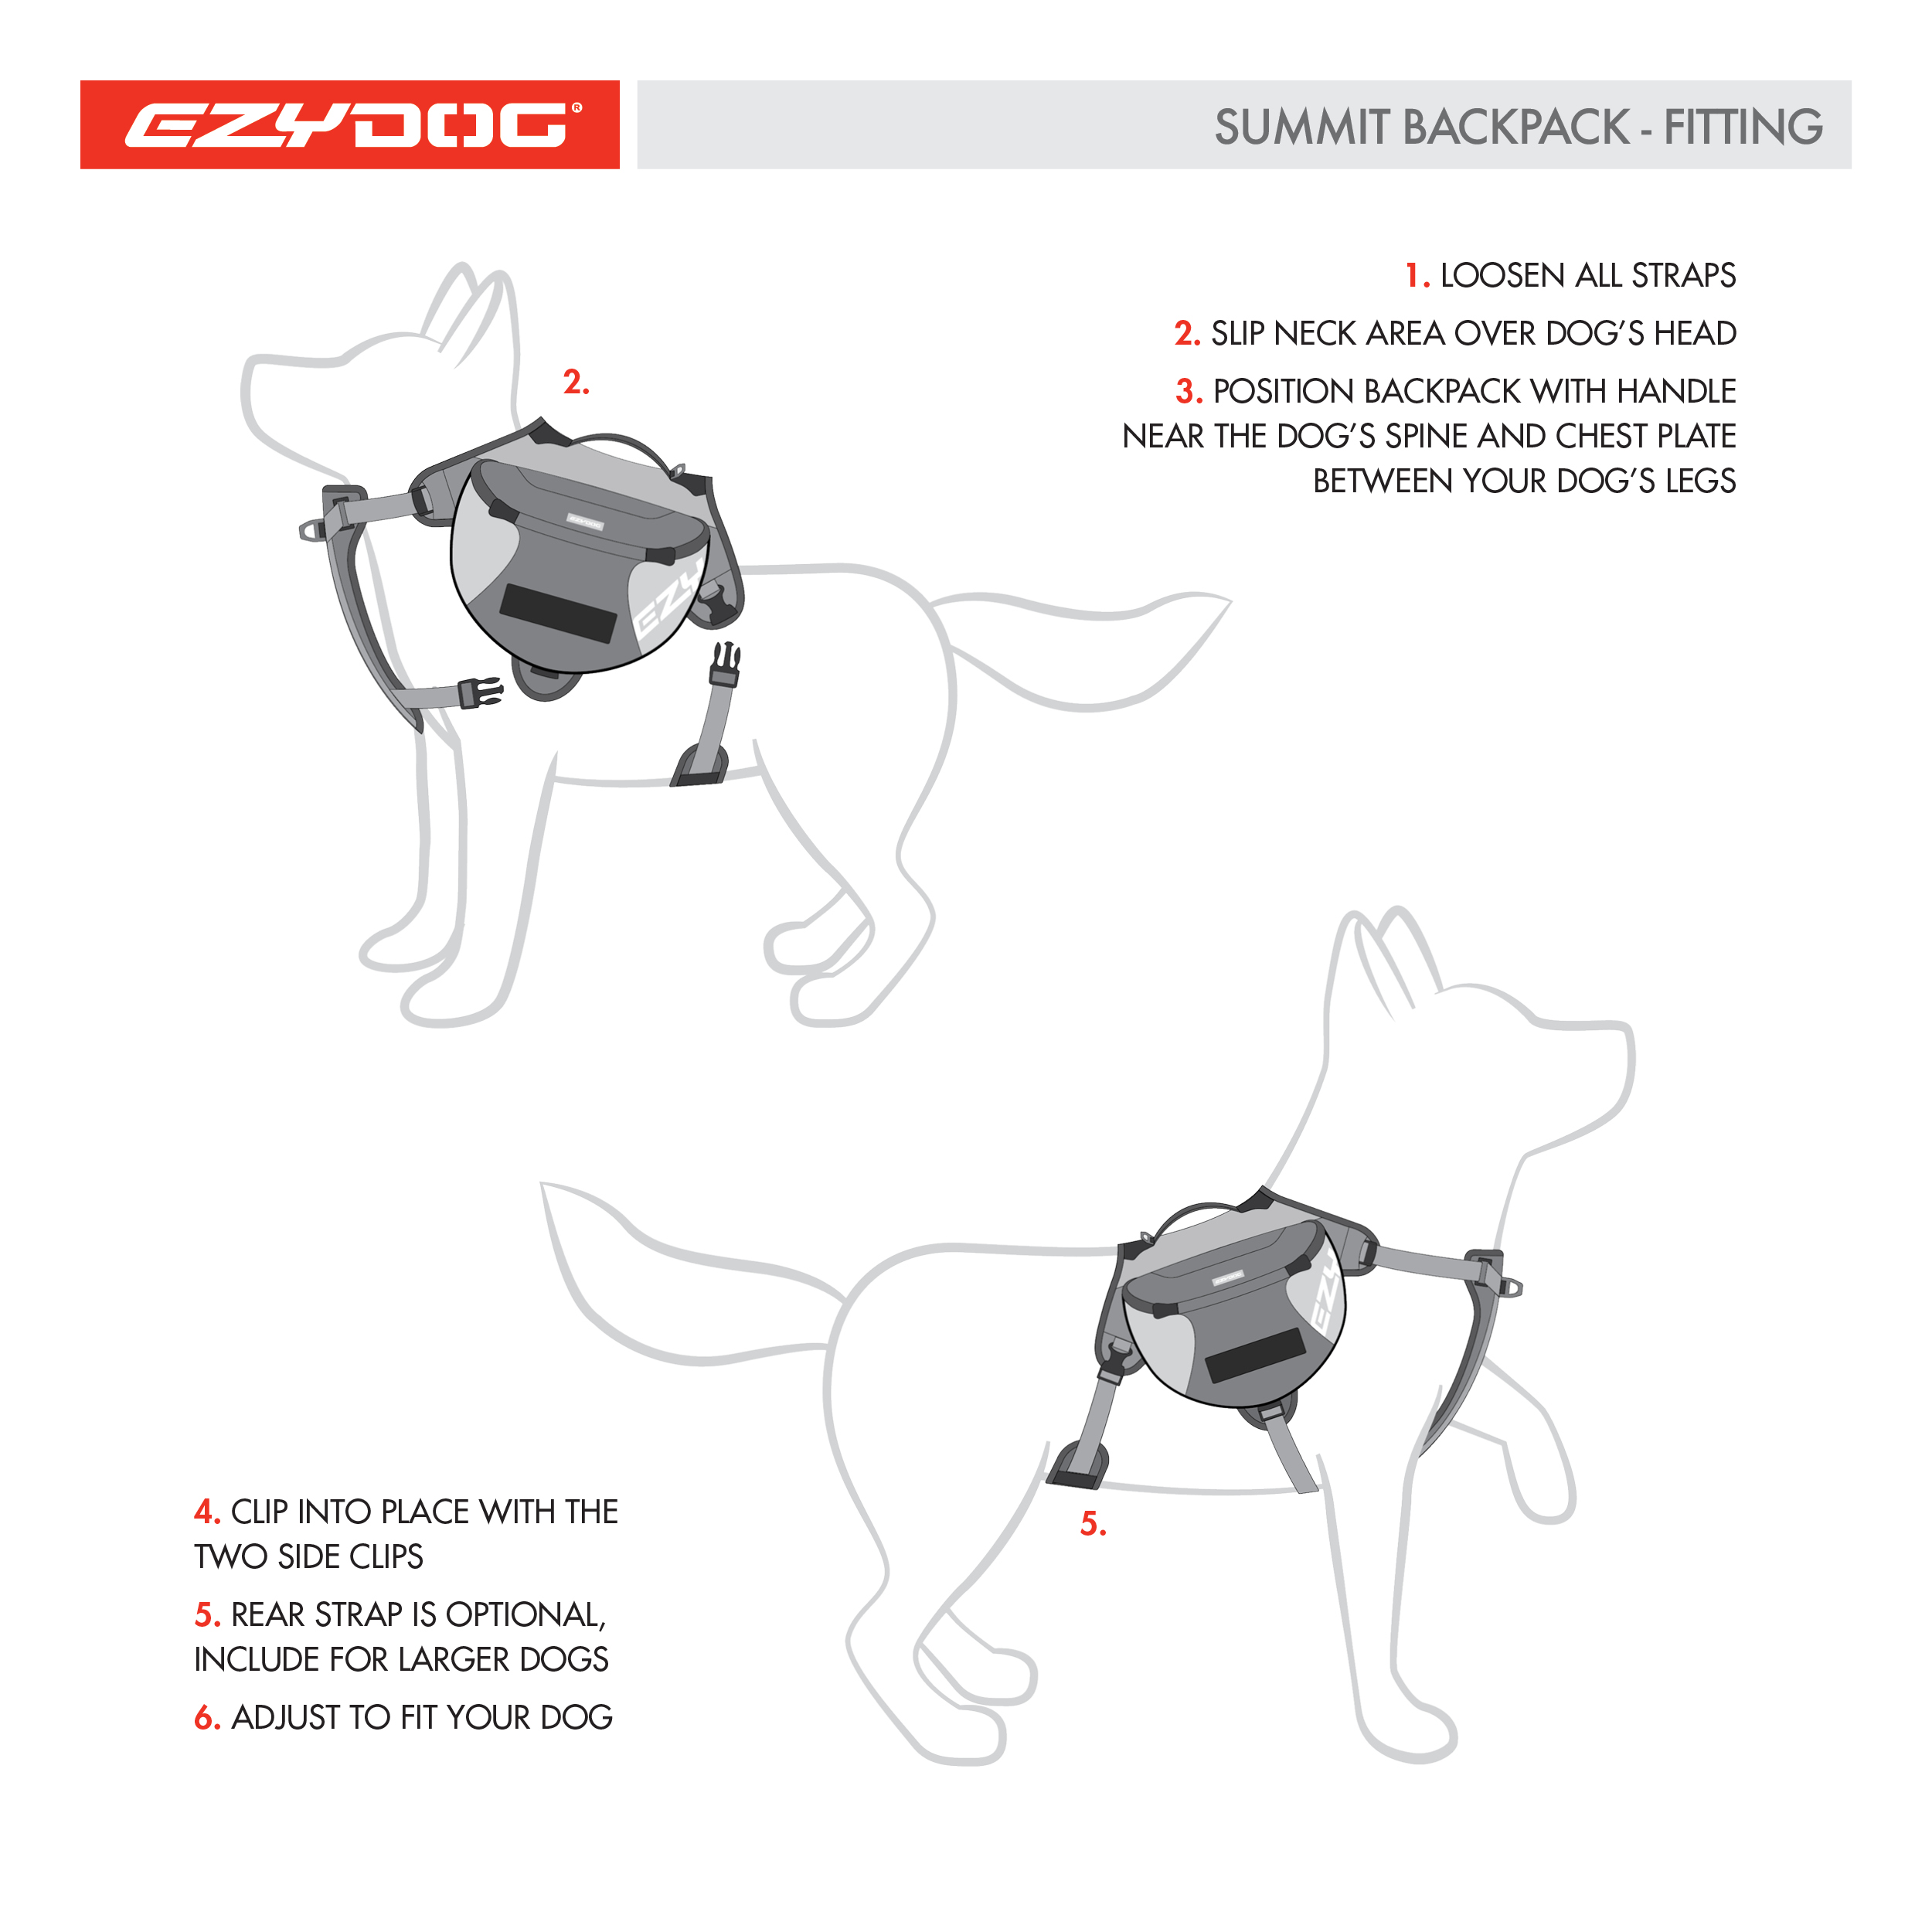 EzyDog Summit Backpack Features